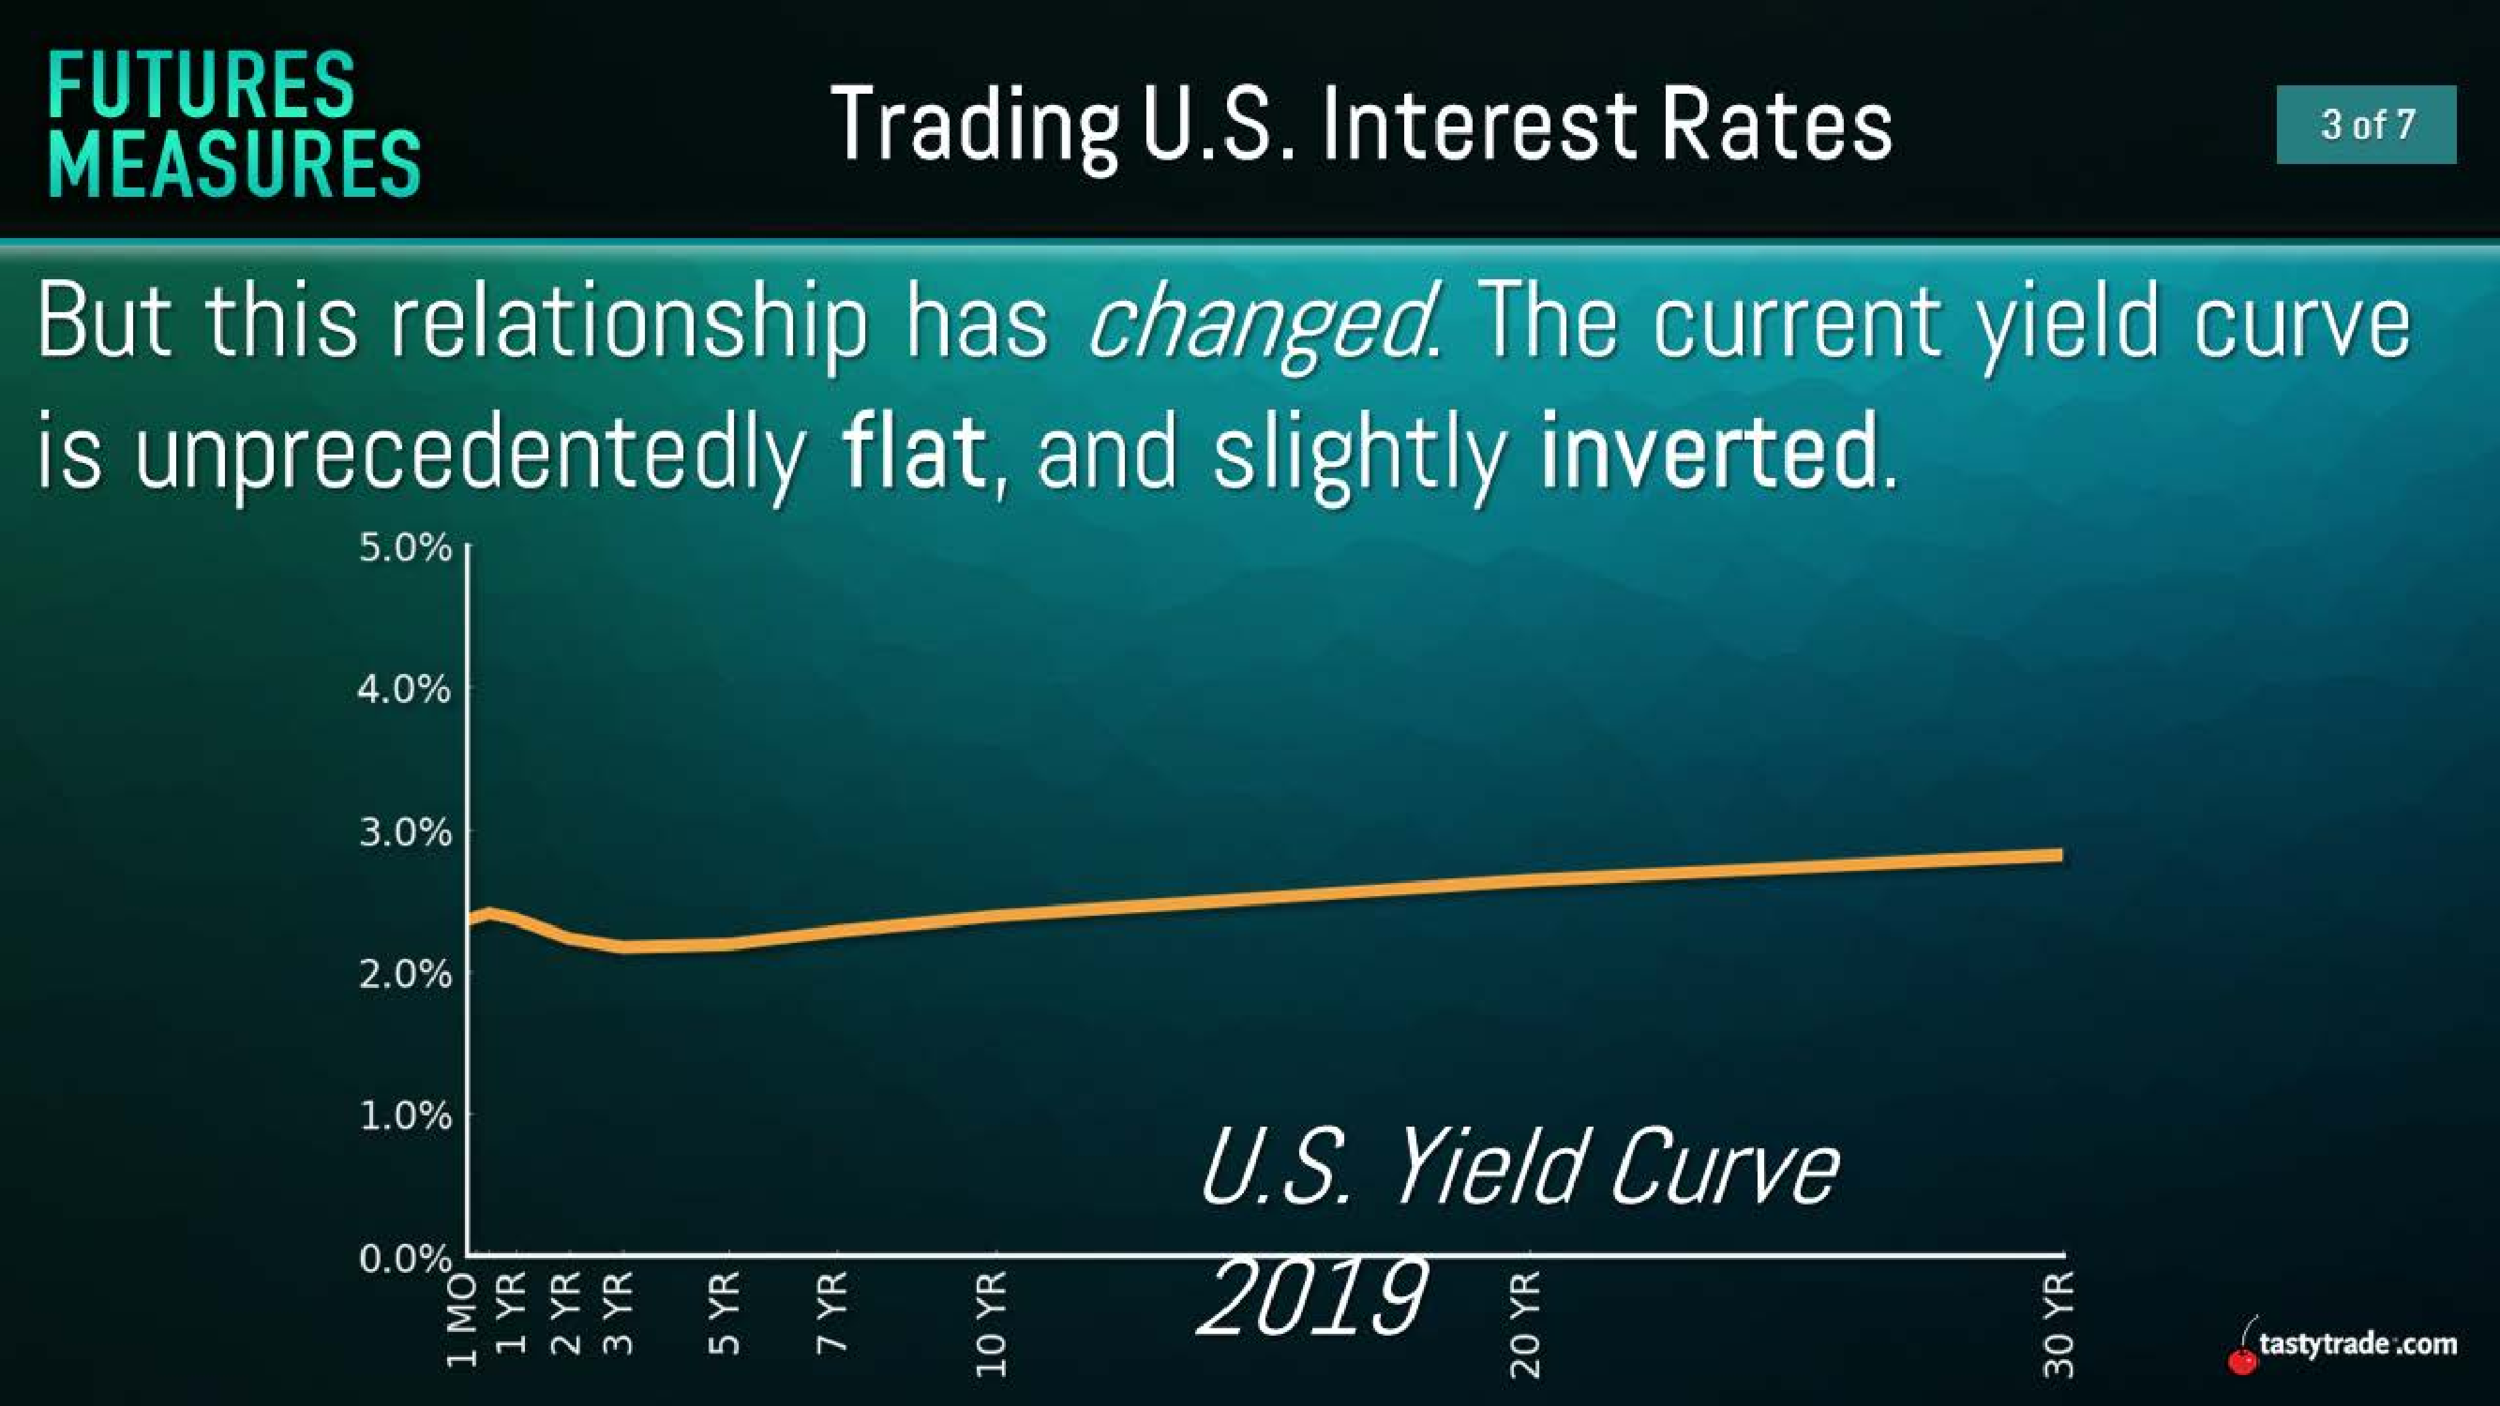 fm_tradingusinterestrates_190524_rev-3.png